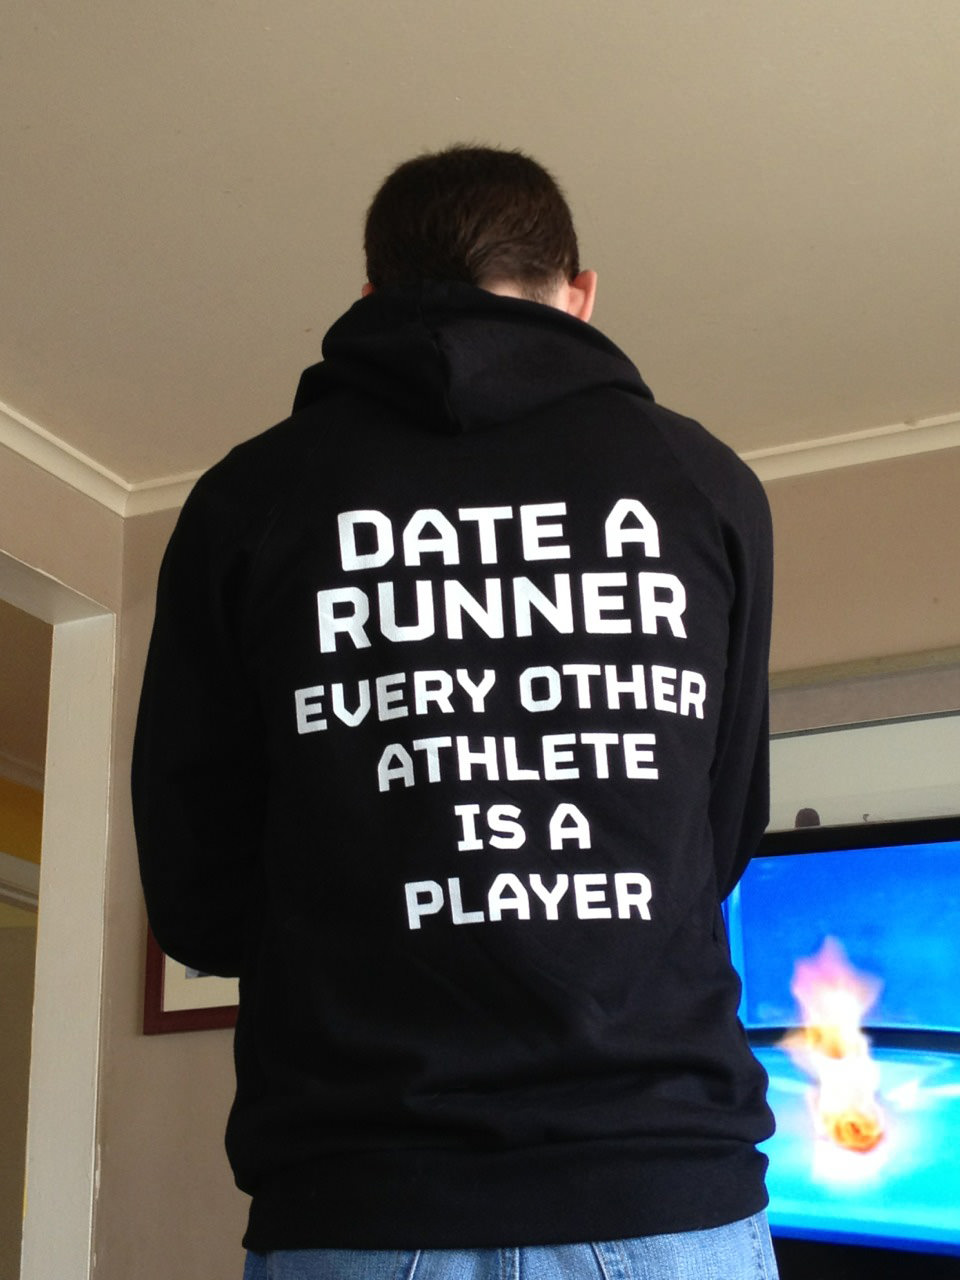 Athletes dating other athletes